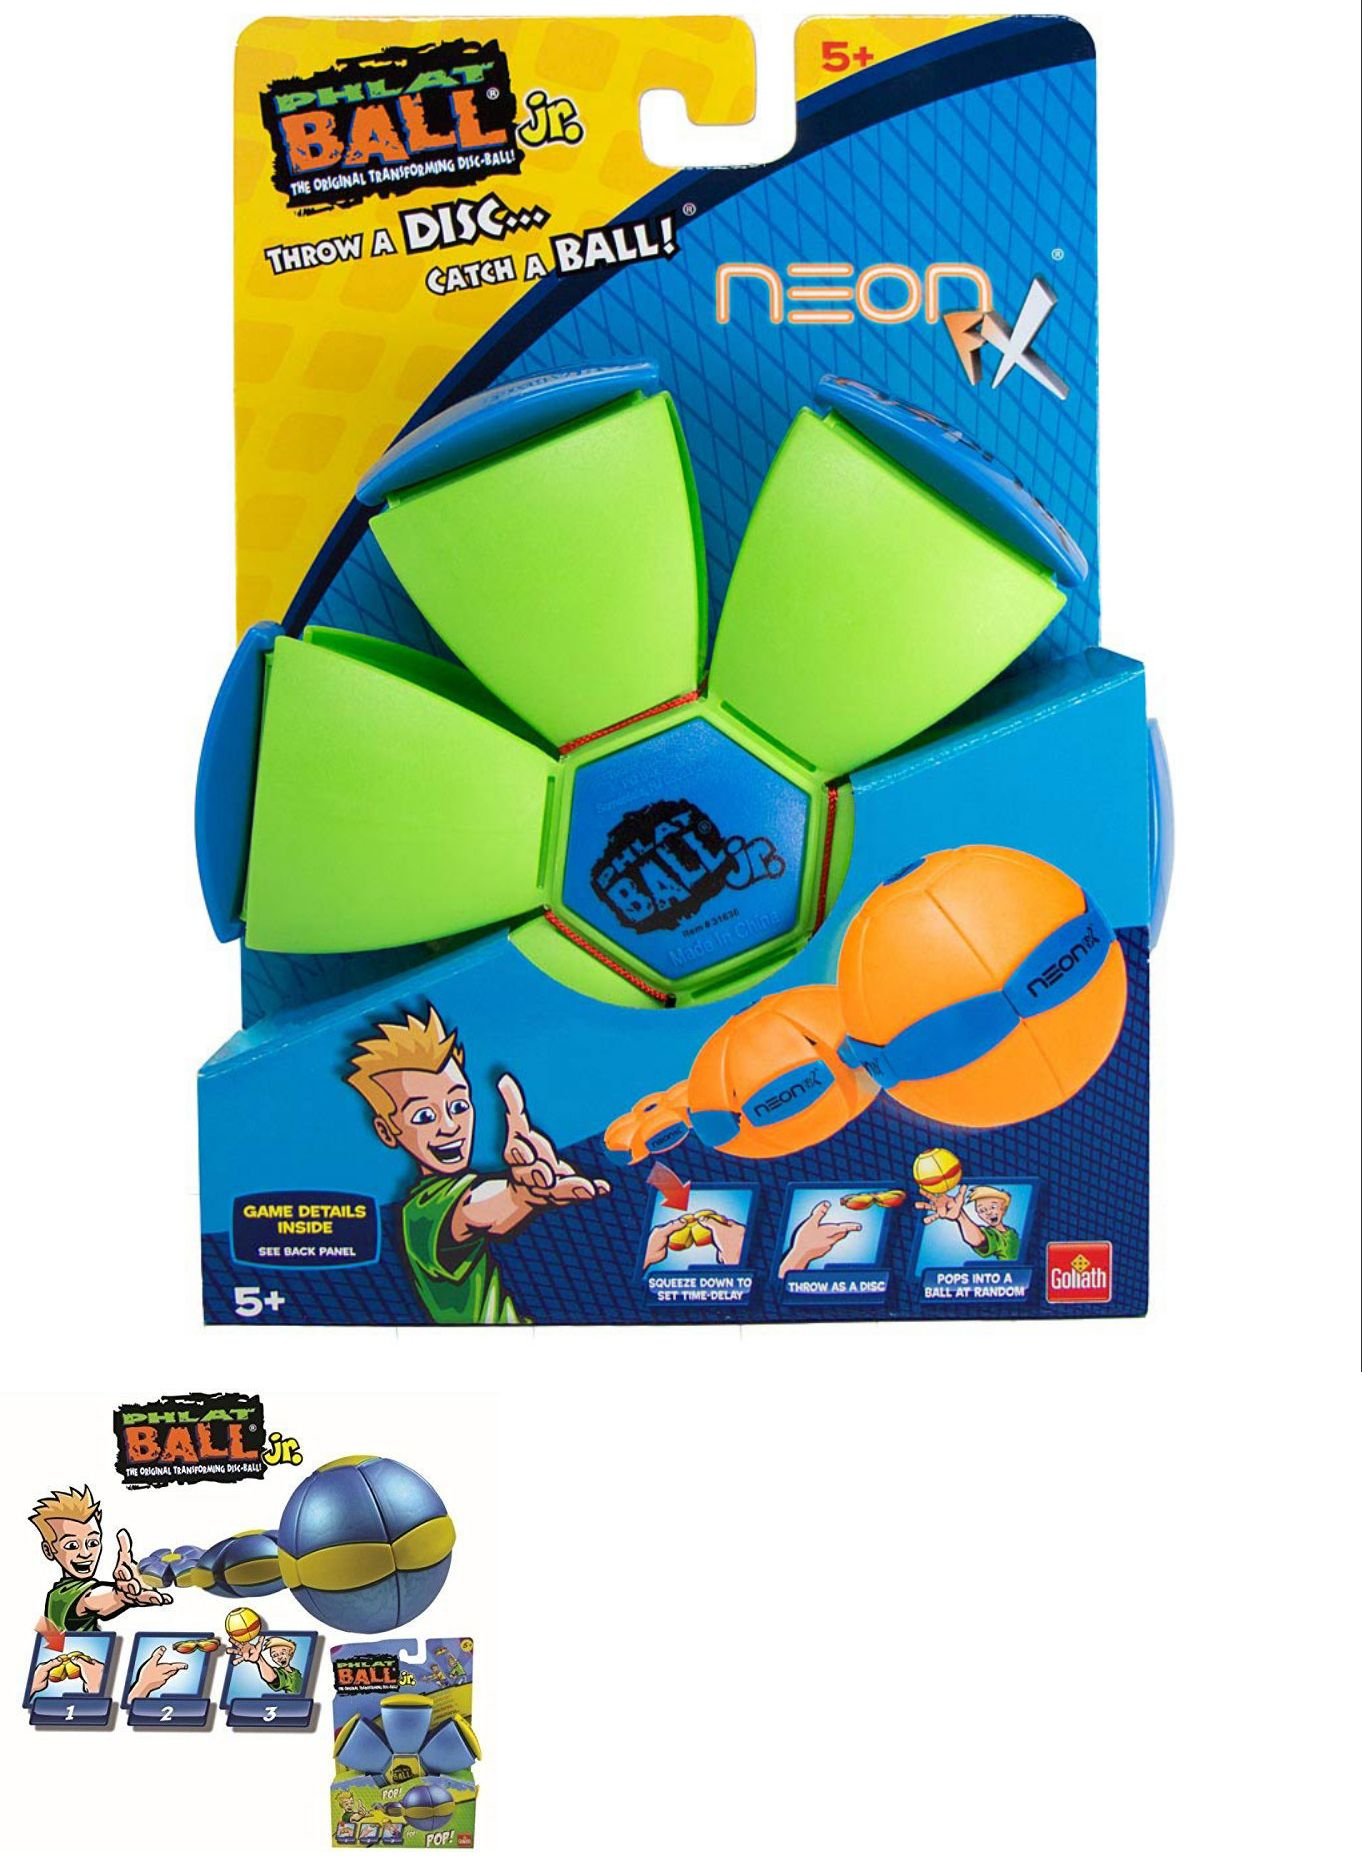 Balls Frisbees and Boomerangs 19017  New Goliath Phlat Ball Jr Neon Fx  Green Free Shipping -  BUY IT NOW ONLY   10.19 on  eBay  balls  frisbees   boomerangs ... 9cff7d2b12f9